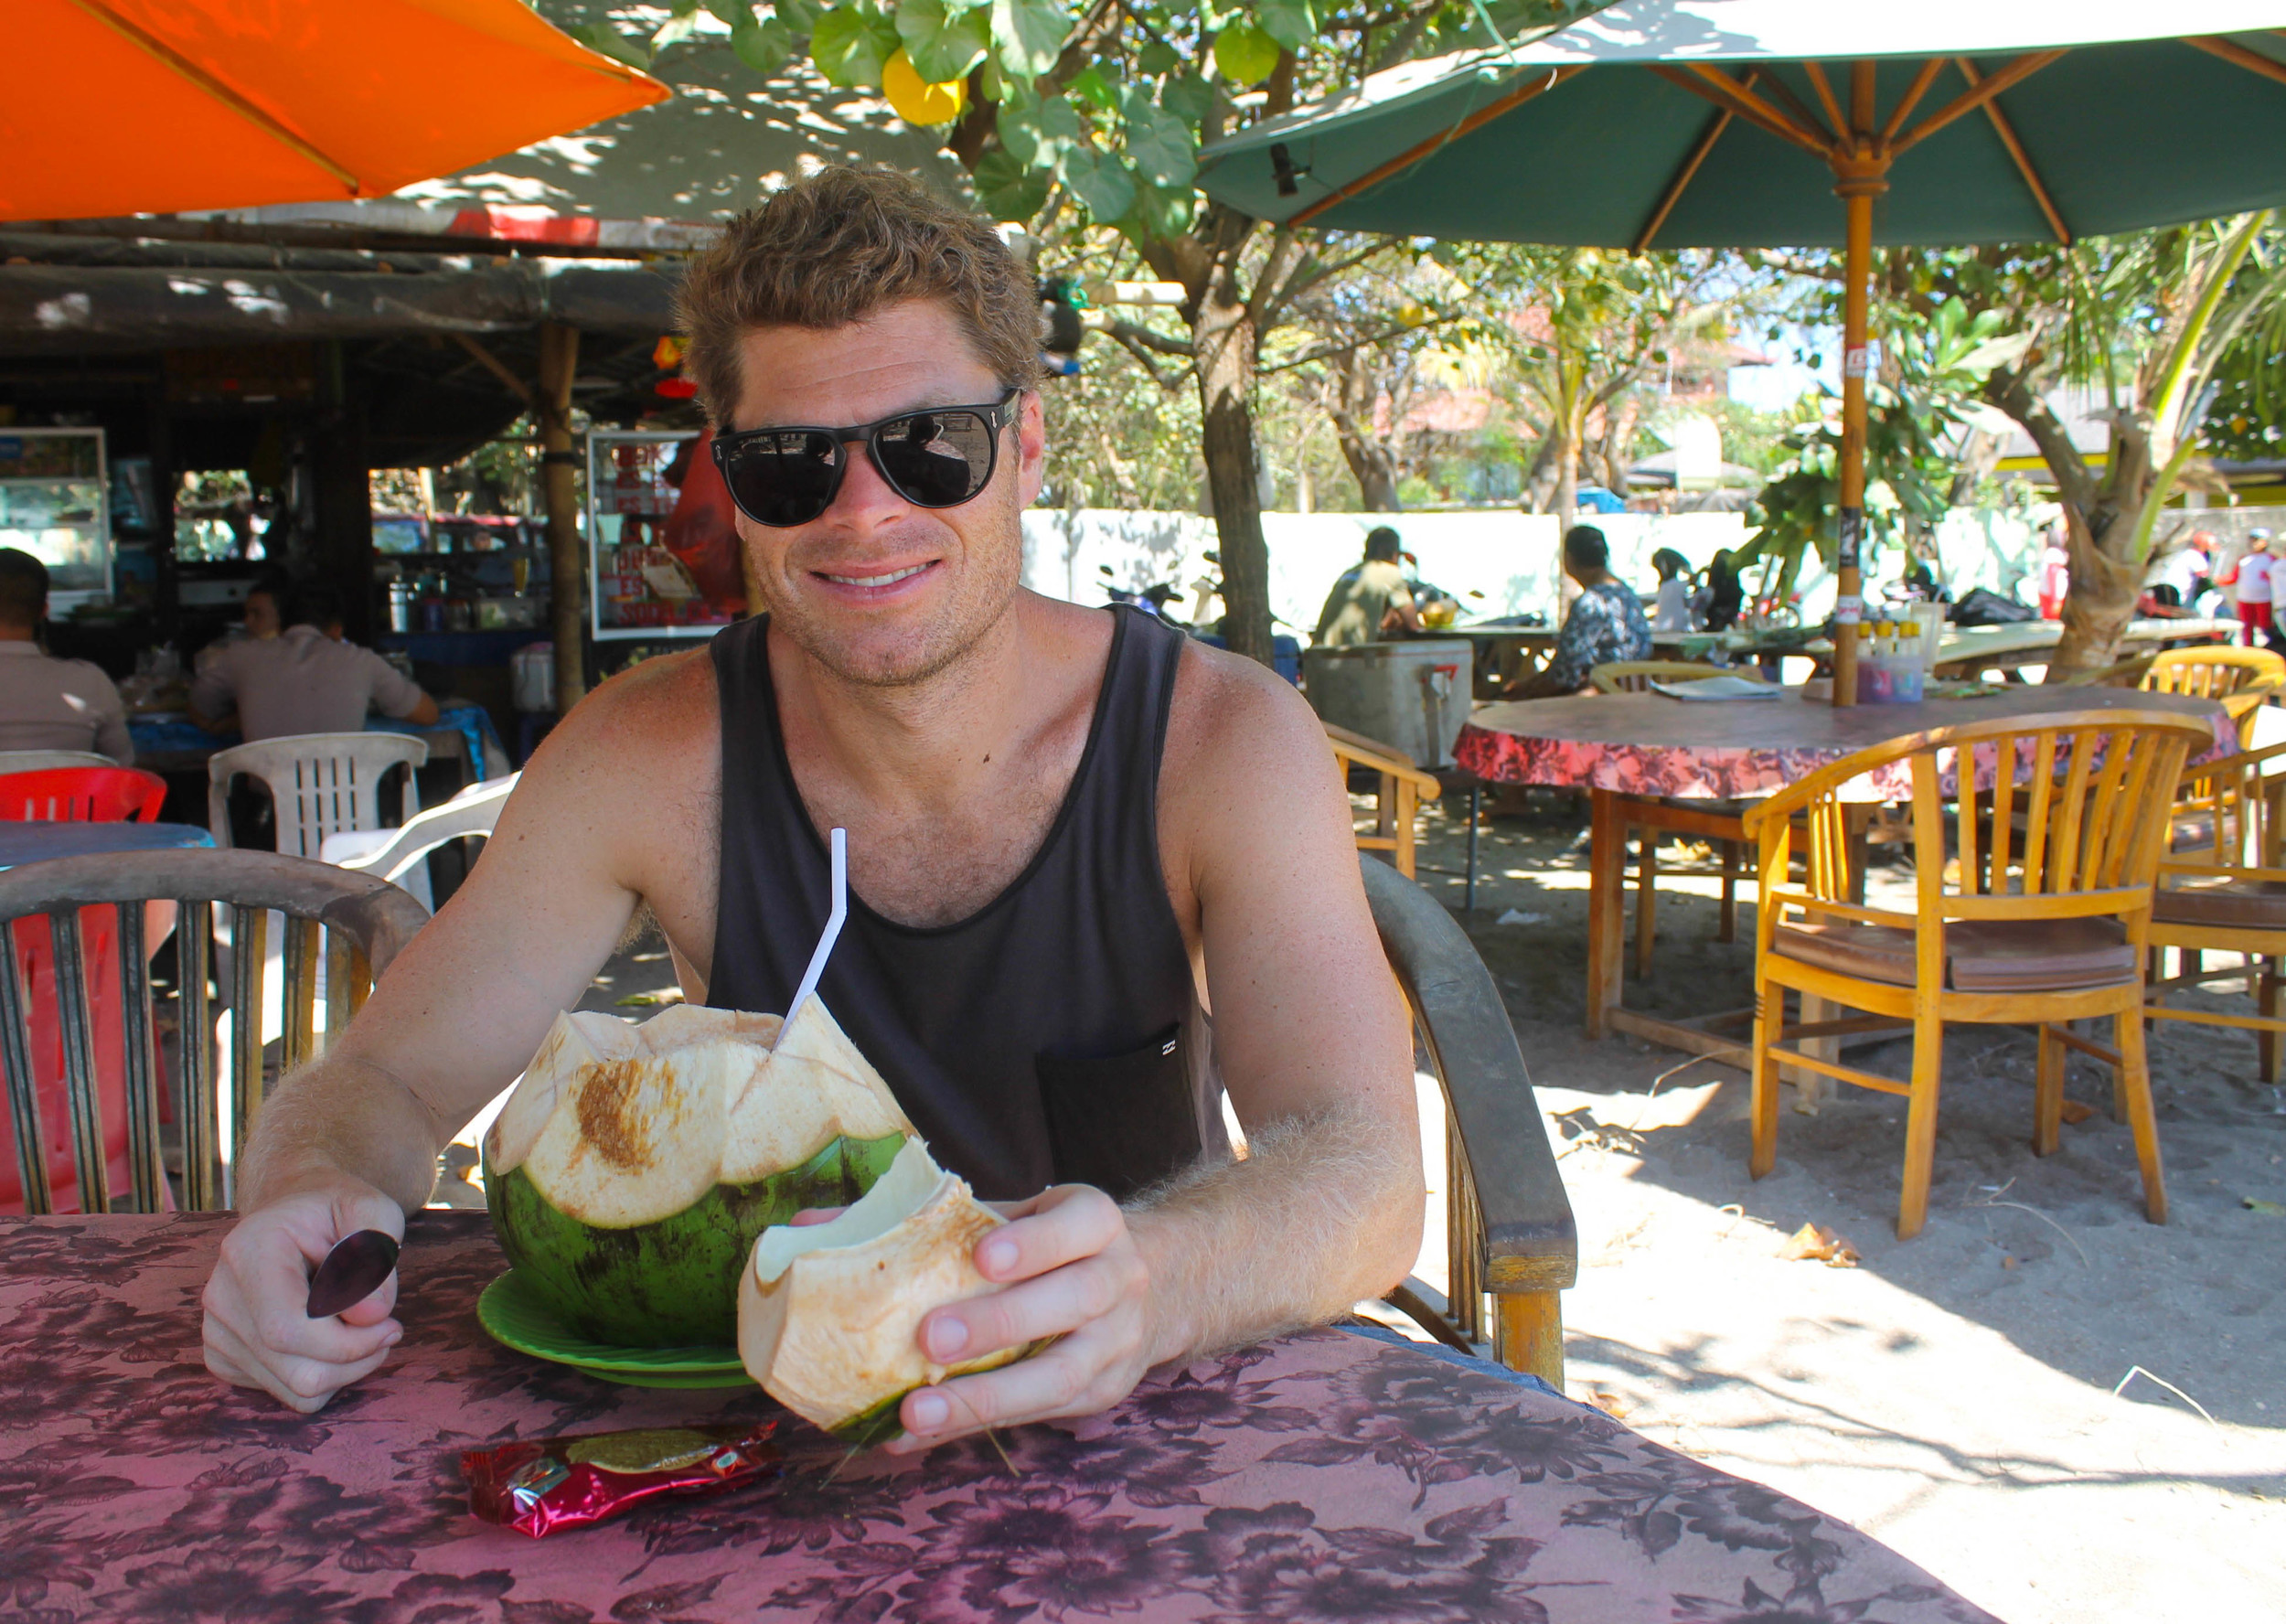 Here is Scott with freshly cut coconut water that cost approximately 10 cents (!).Makes you question all those times you bought $8 coconut waters after a hot yoga class because you thought you really needed those electrolytes.